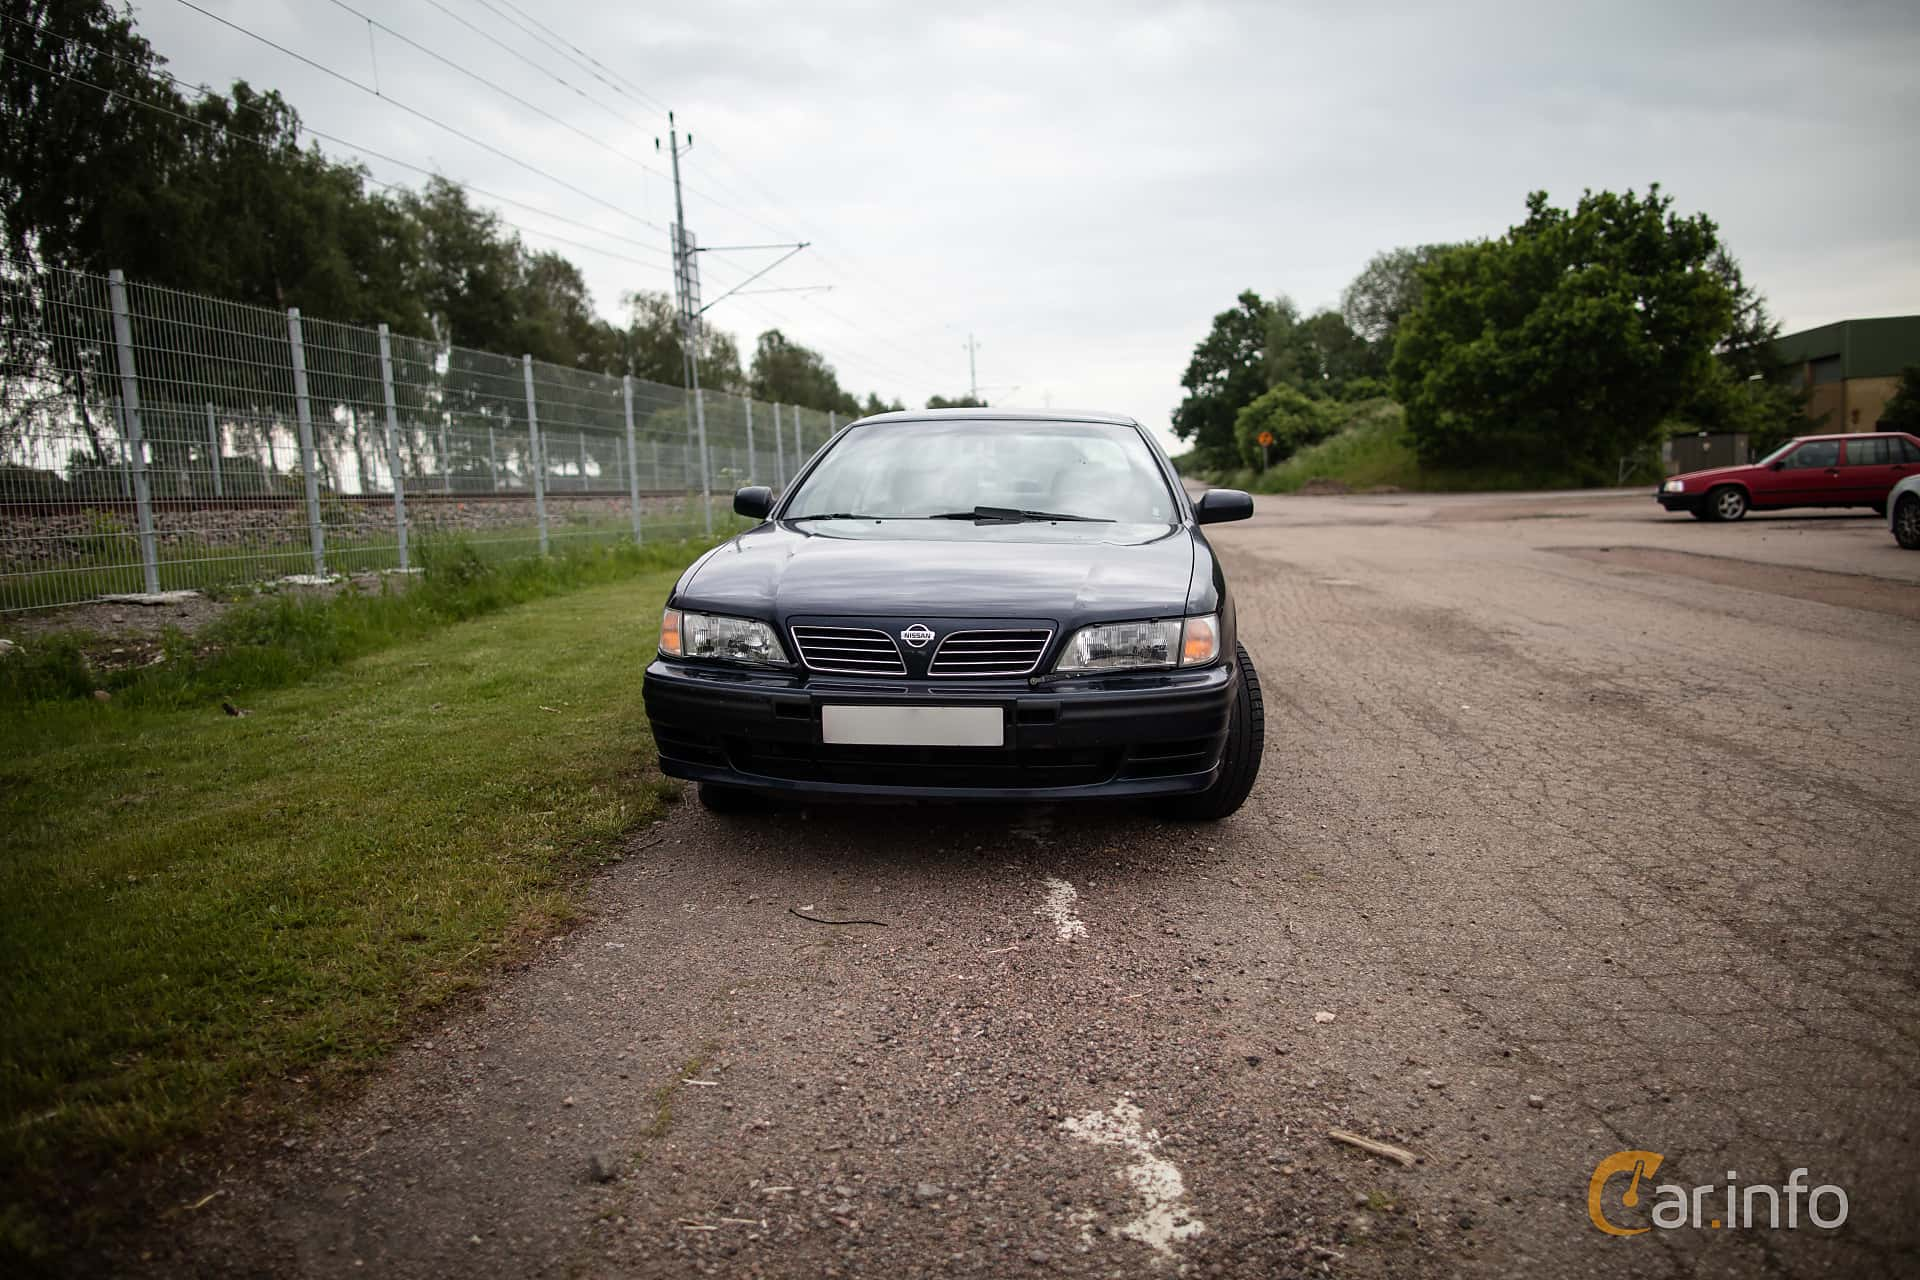 5 images of Nissan Maxima 2 0 V6 Manual, 140hp, 1995 by